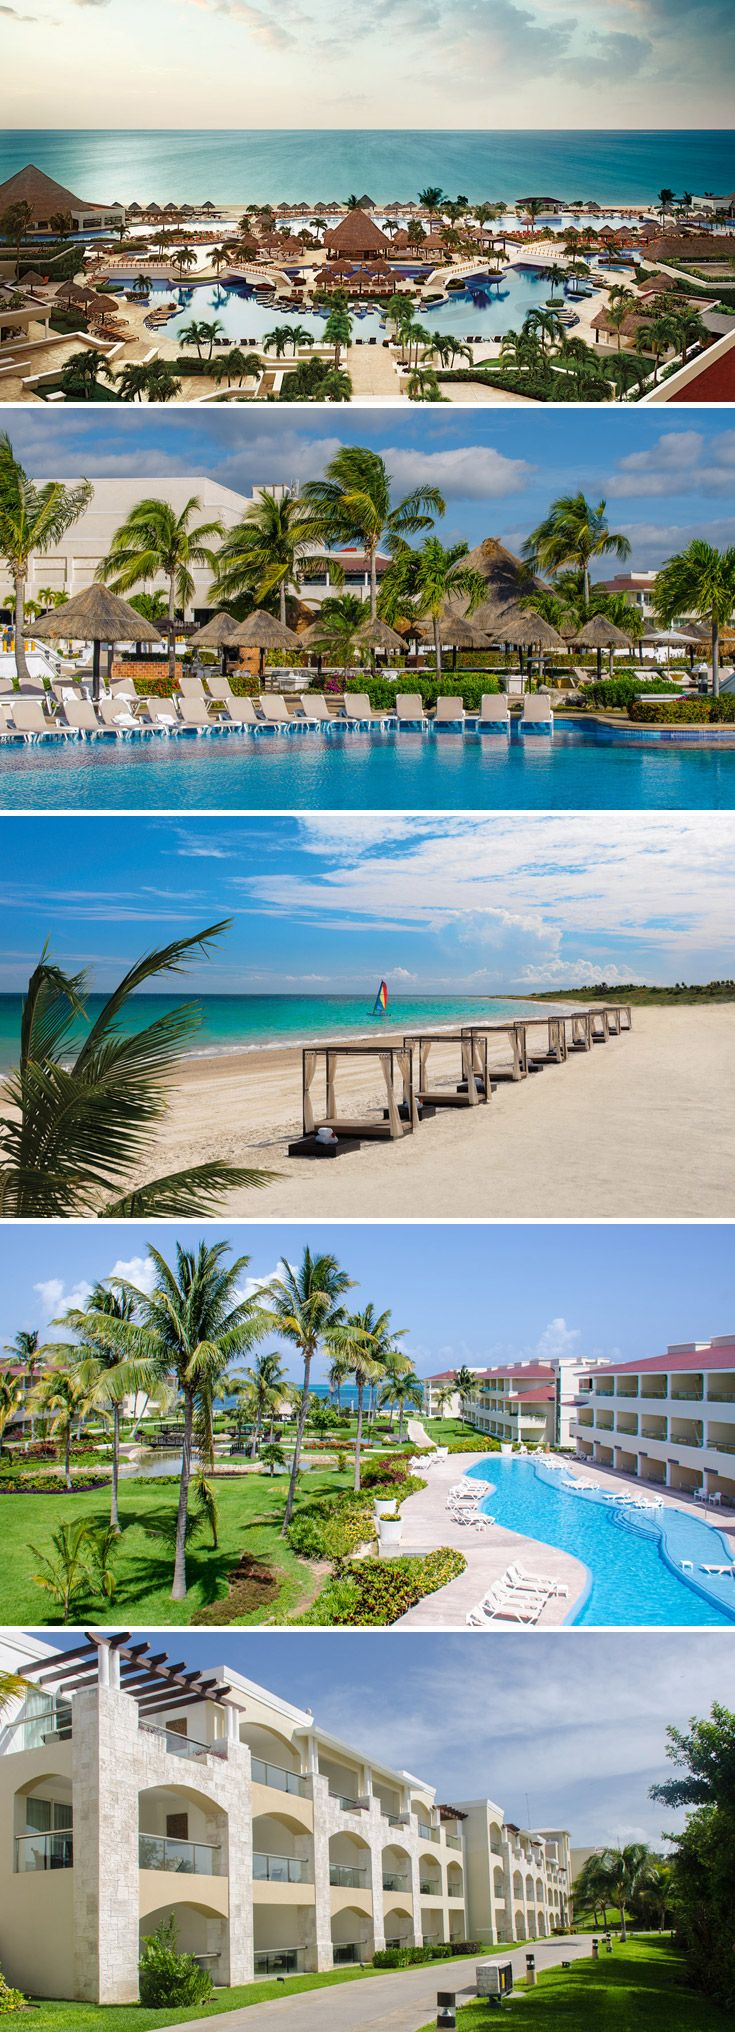 The Moon Palace is the Palace Resorts' flagship all inclusive resort in Cancun, Mexico.